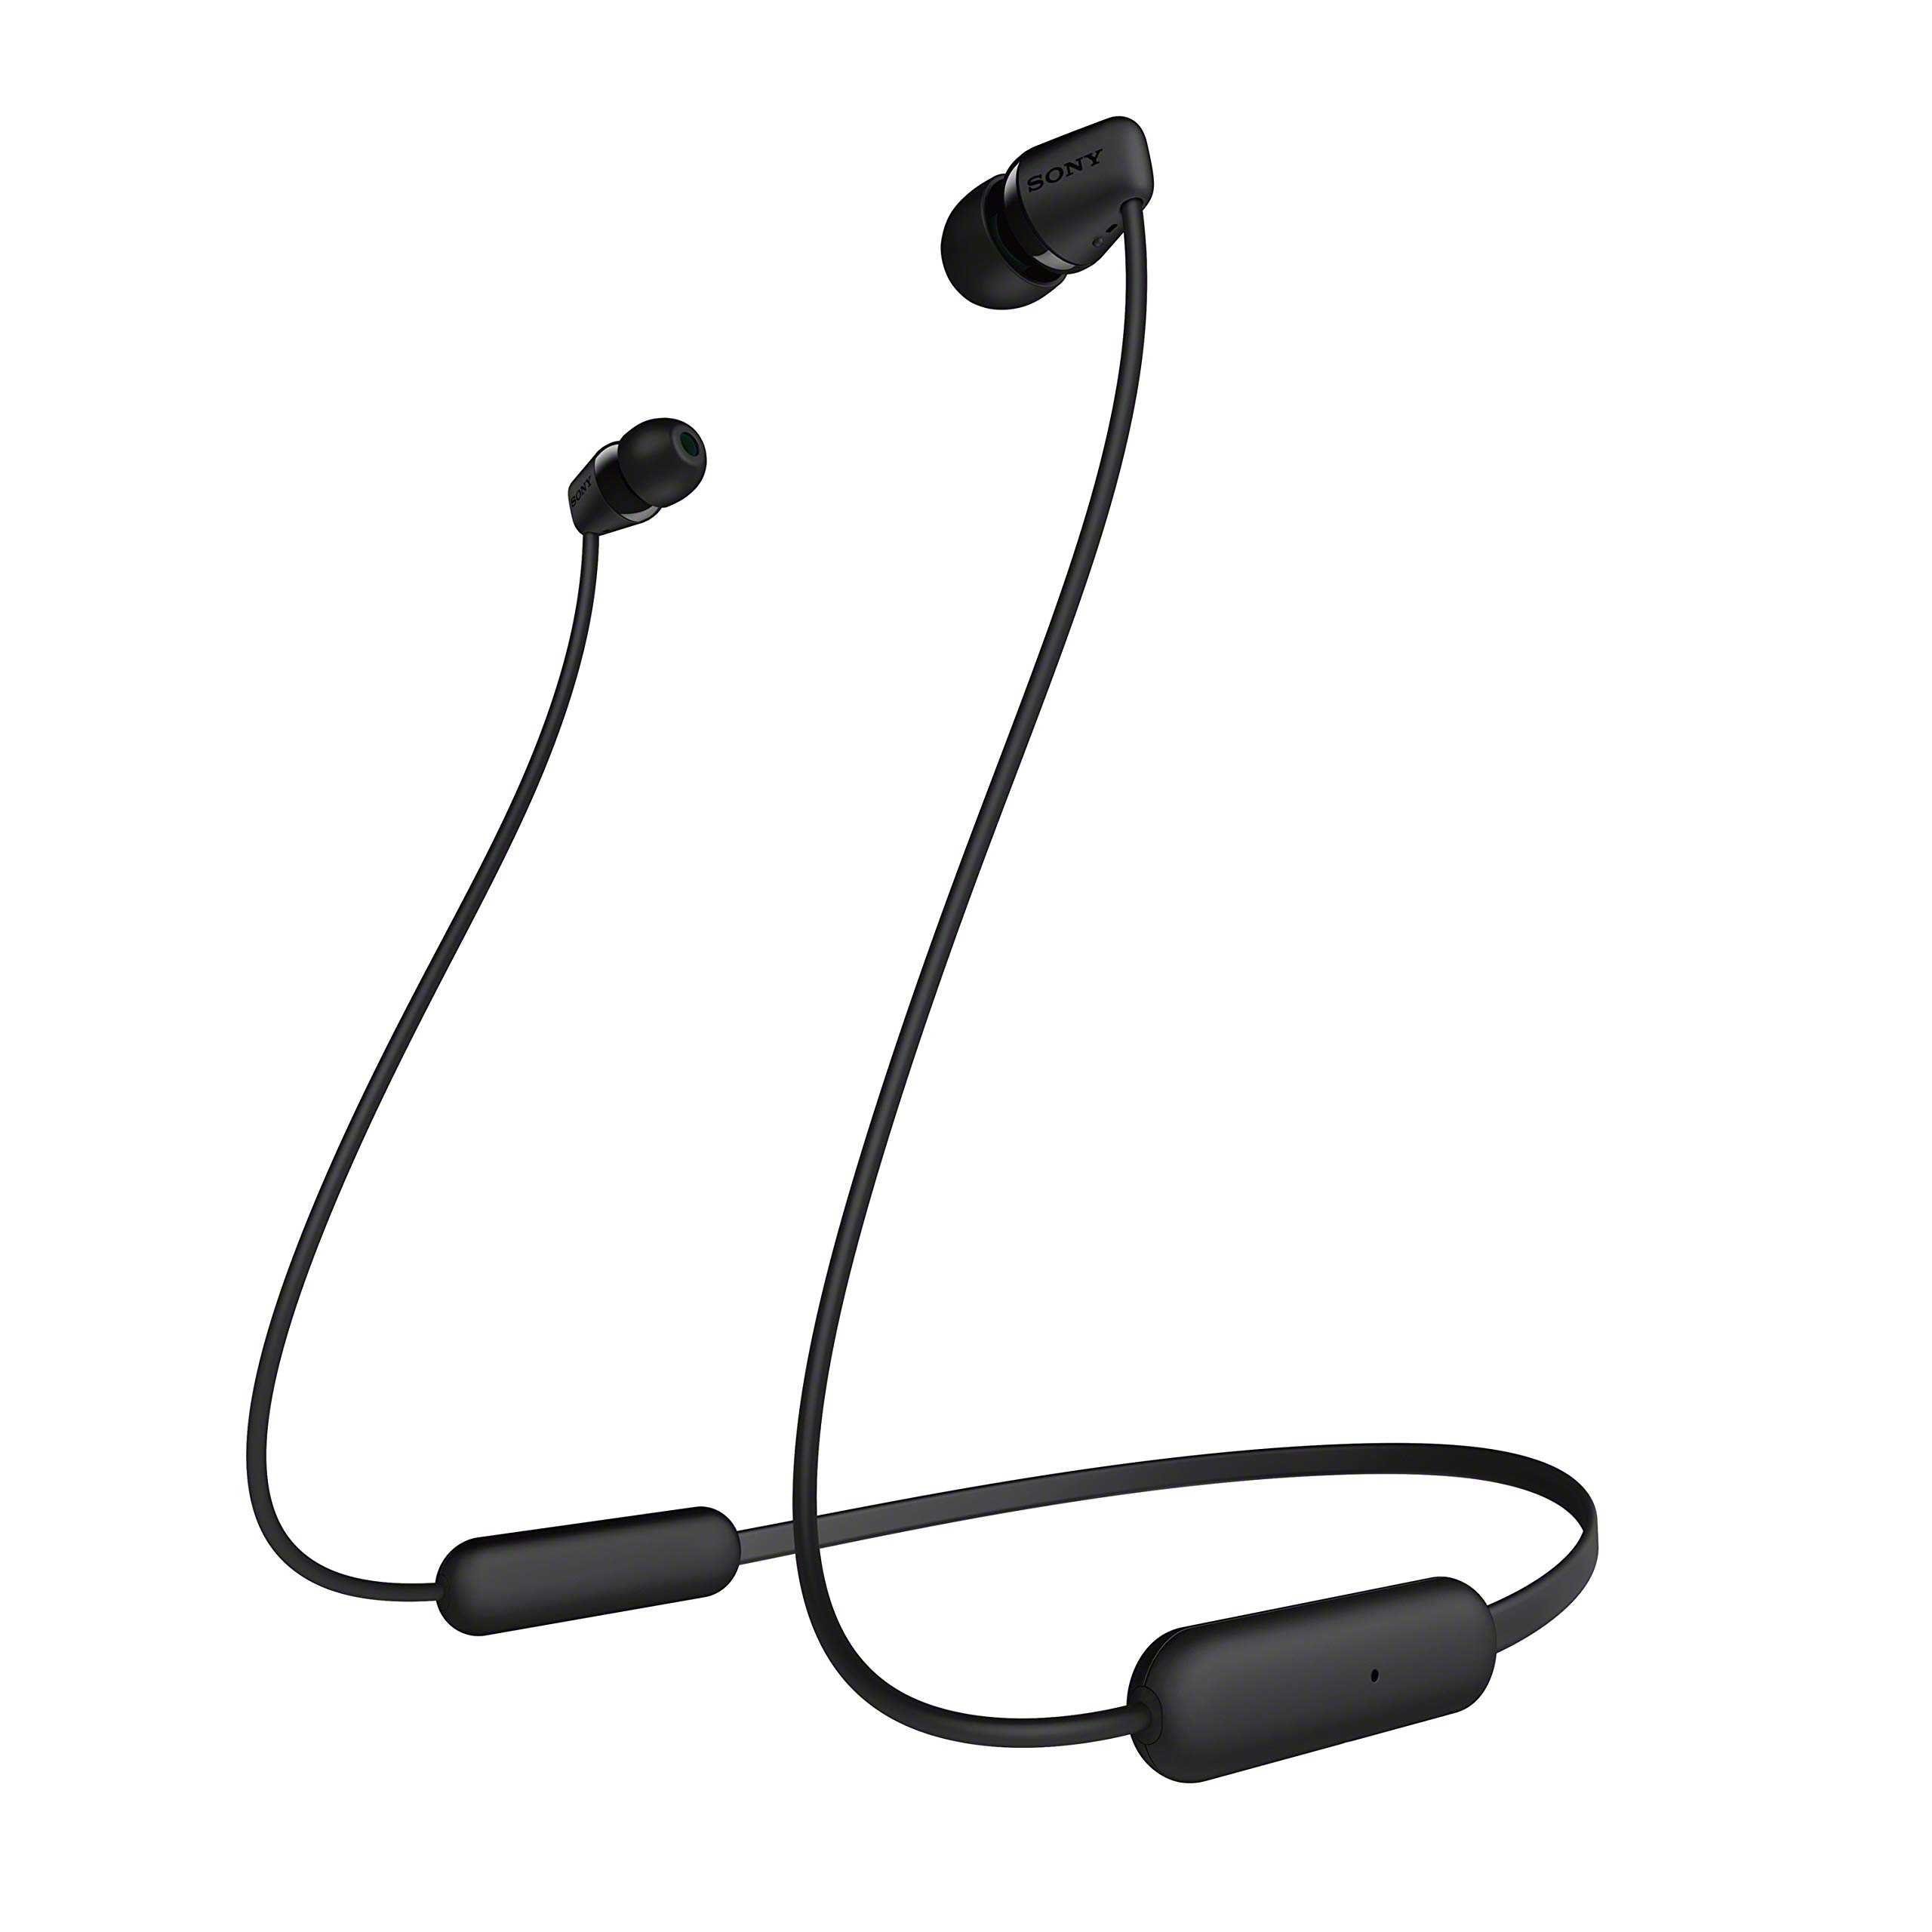 Amazon Com Sony Wi C200 Wireless In Ear Headset Headphones With Mic For Phone Call Black Wic200 B Electronics